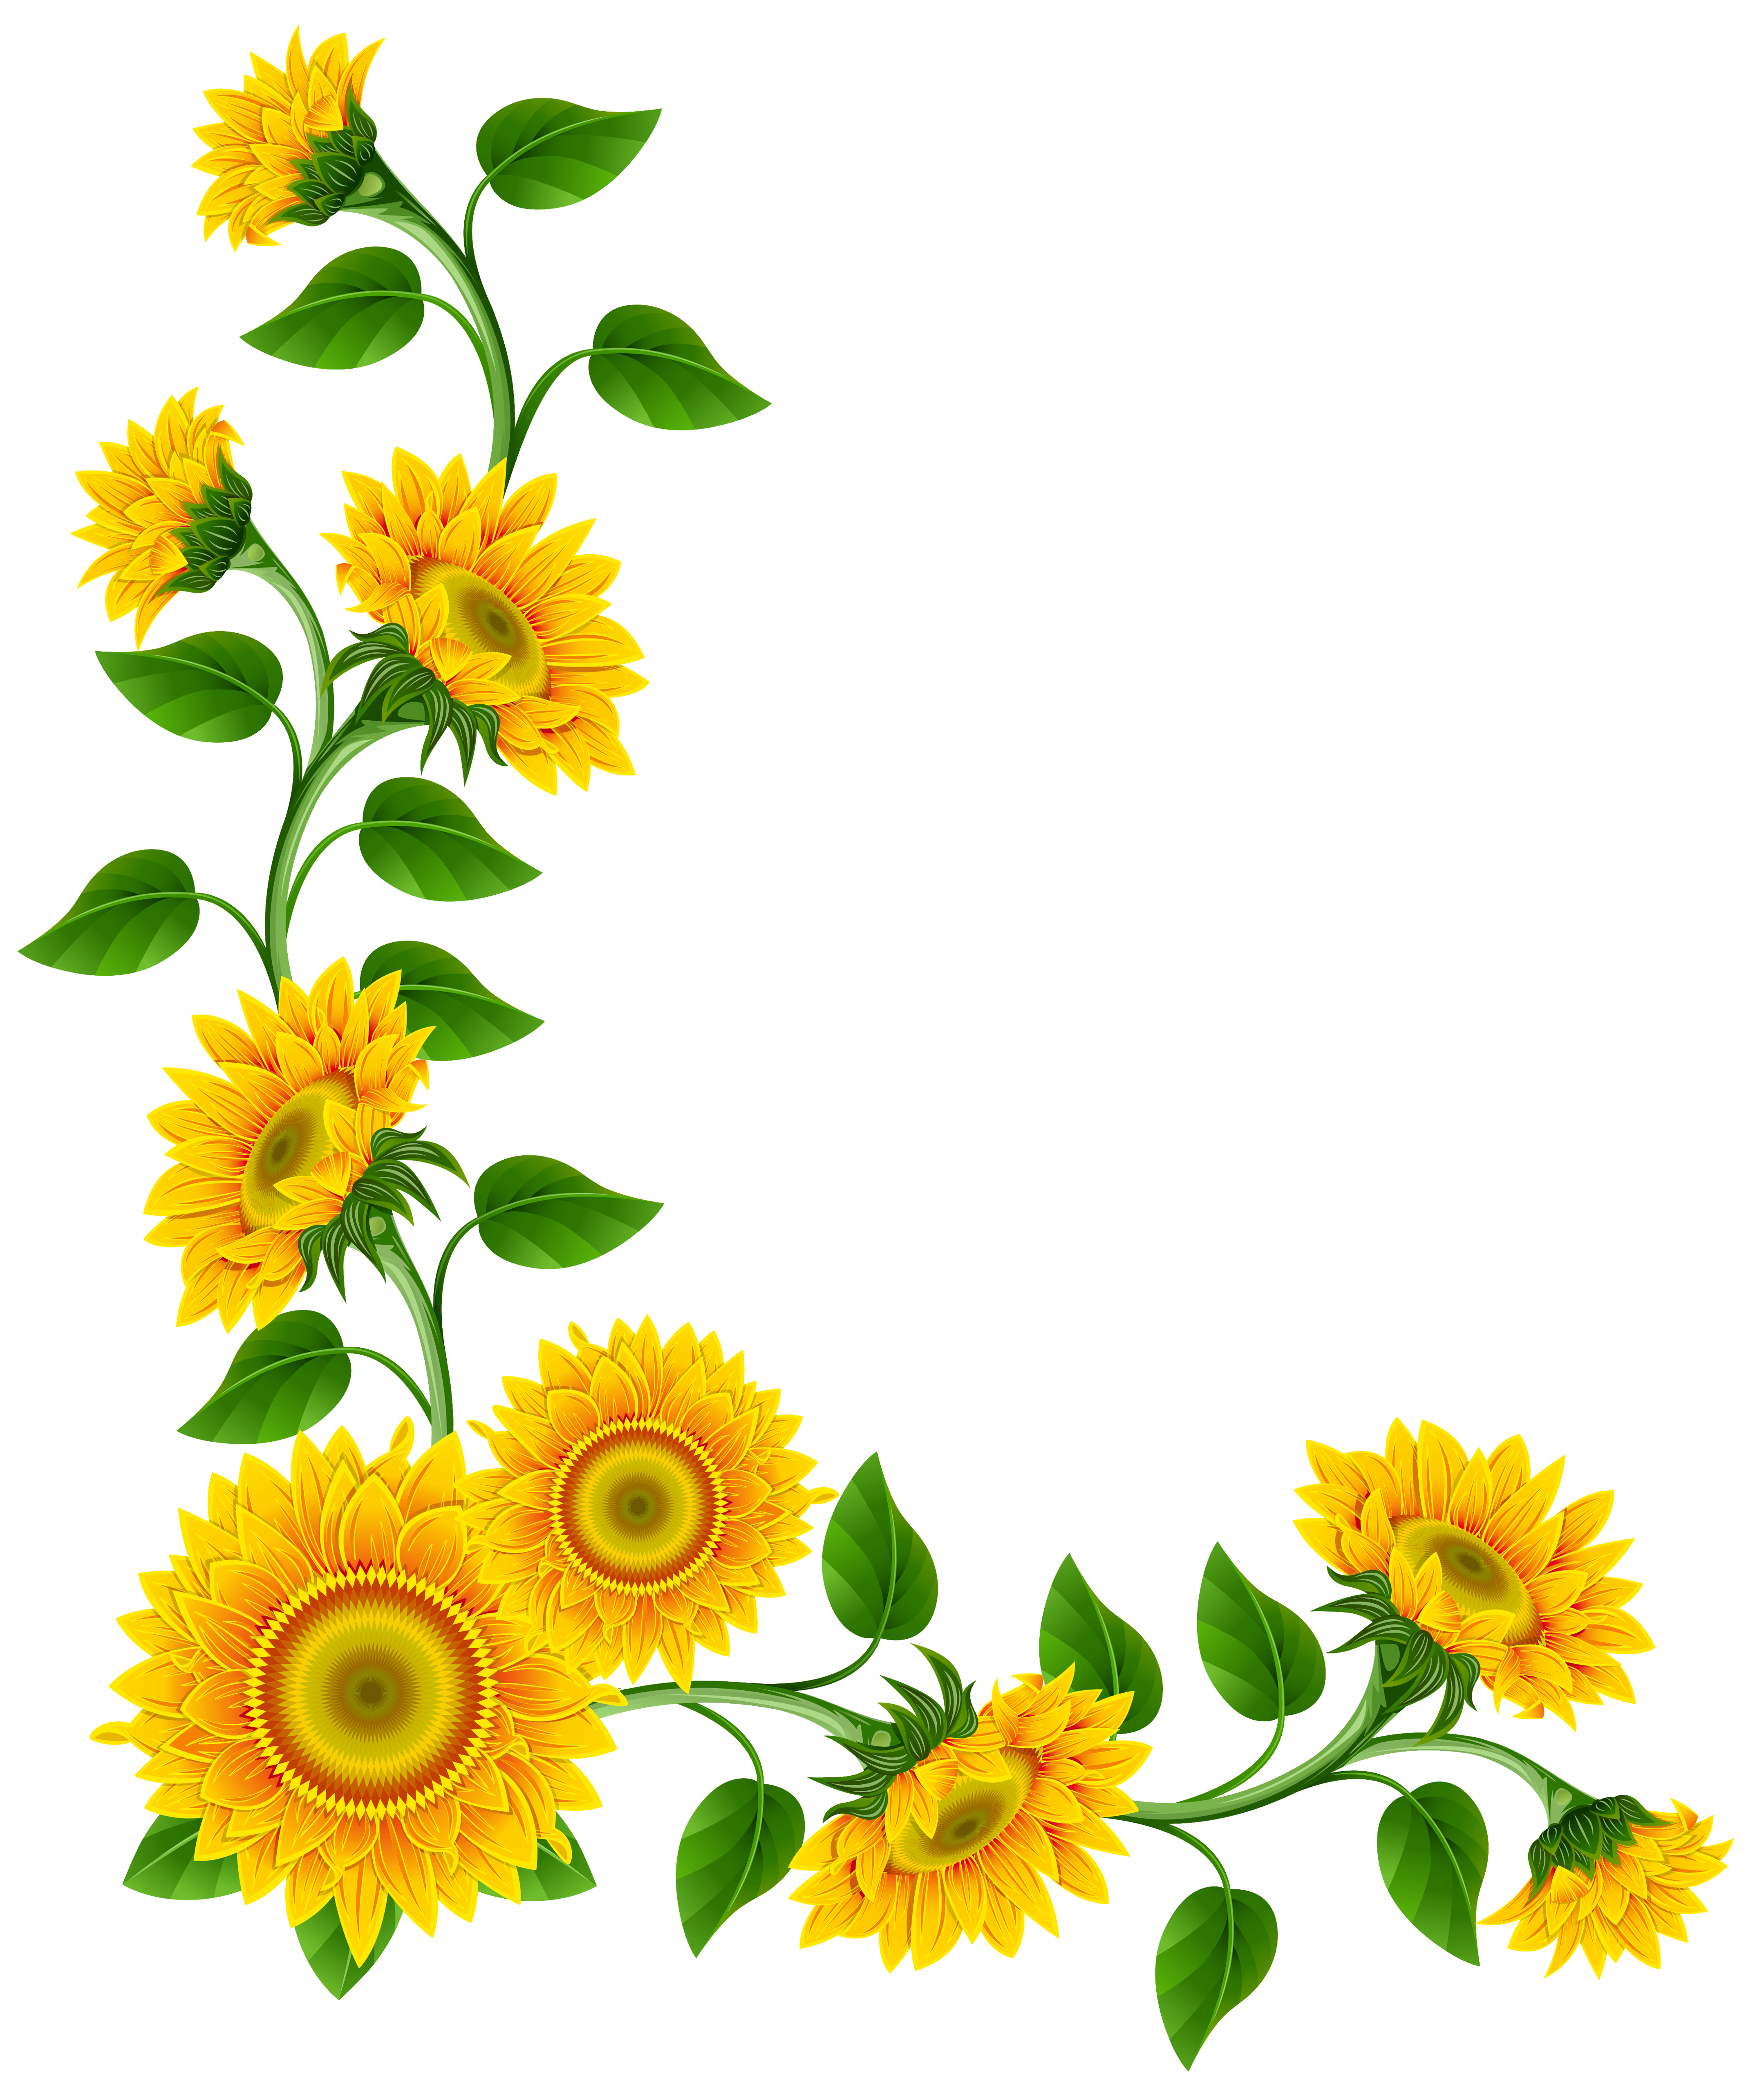 Sunflowers PNG - 6601